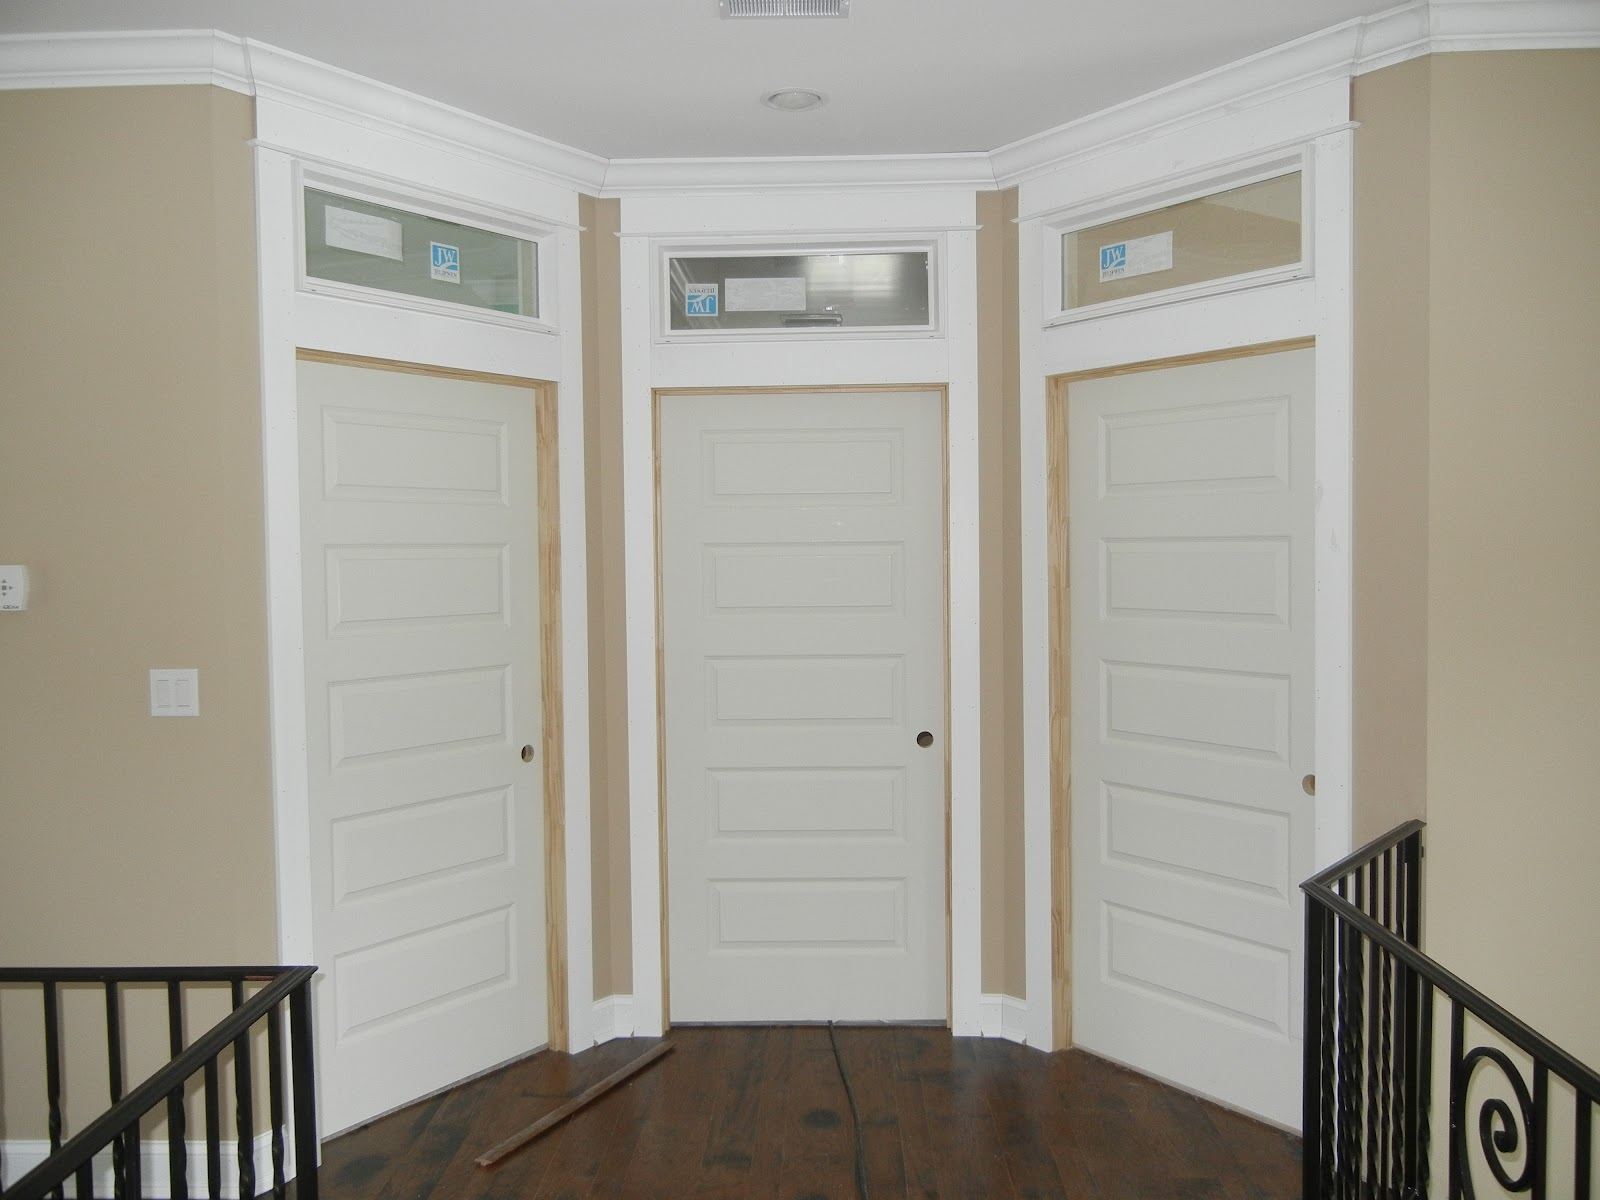 Double Oak Plantation Then Now Transoms Over The Interior Doors & Interior Doors With Transoms | Shapeyourminds.com